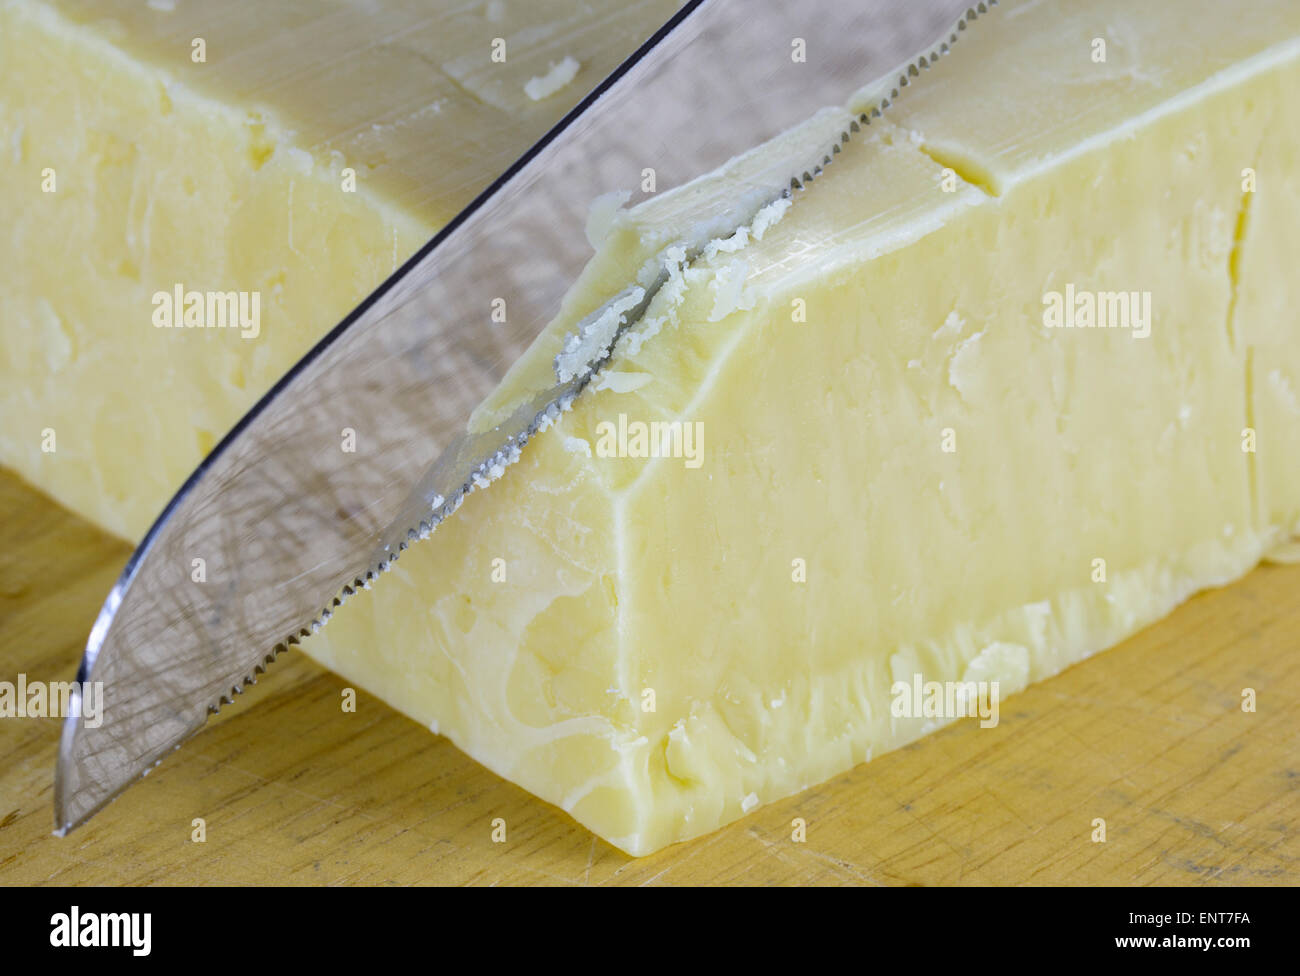 Knife cutting through yellow cheddar cheese of a chopping board. - Stock Image